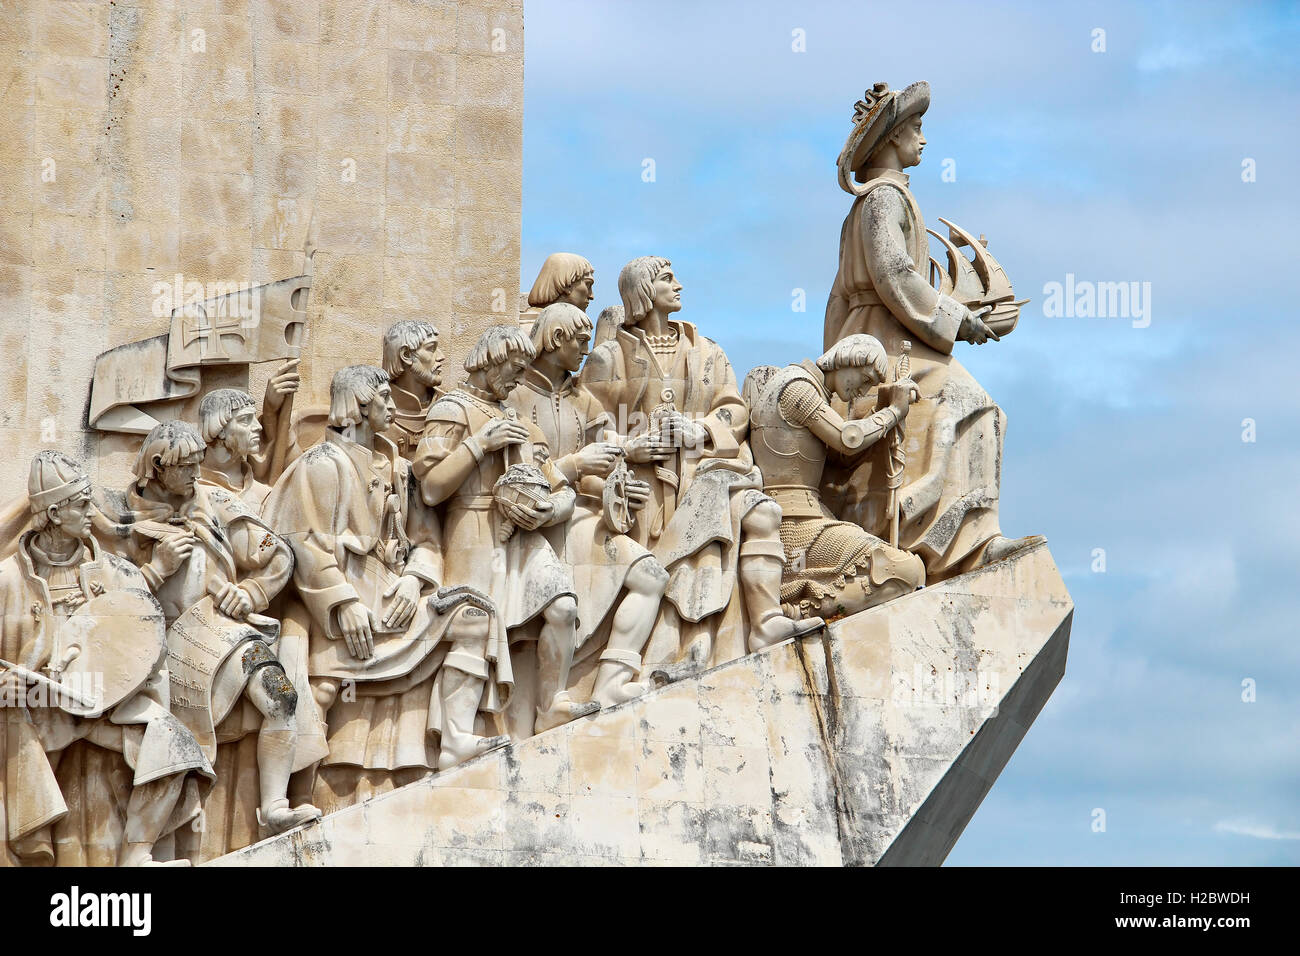 Monument to the Discoveries fragment (Padrao dos Descobrimentos) in Santa Maria de Belem district of Lisbon, Portugal - Stock Image